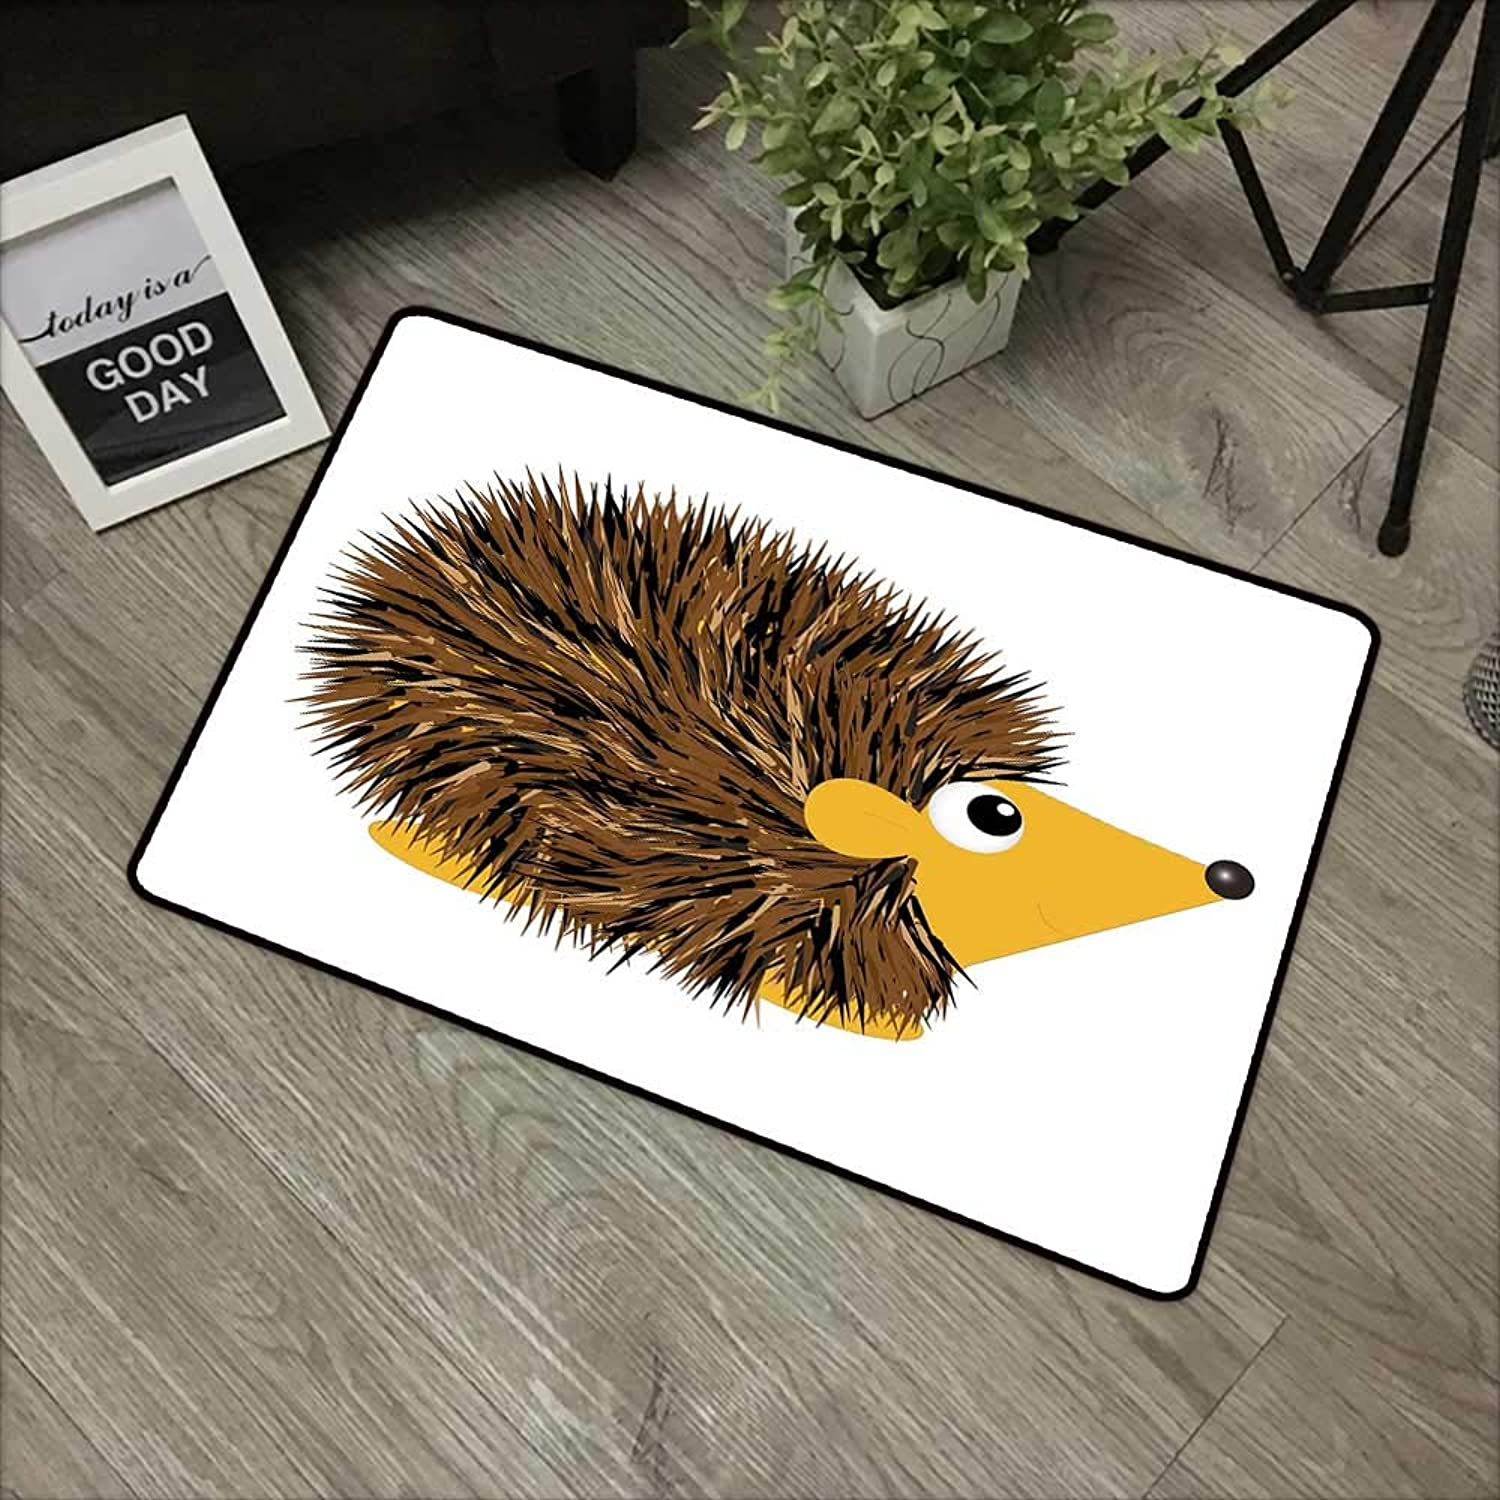 Bathroom Door mat W35 x L47 INCH Hedgehog,Cartoon Animal with a Happy Smile on Its Face Hedgehog Illustration Spikes,Brown Earth Yellow Non-Slip, with Non-Slip Backing,Non-Slip Door Mat Carpet